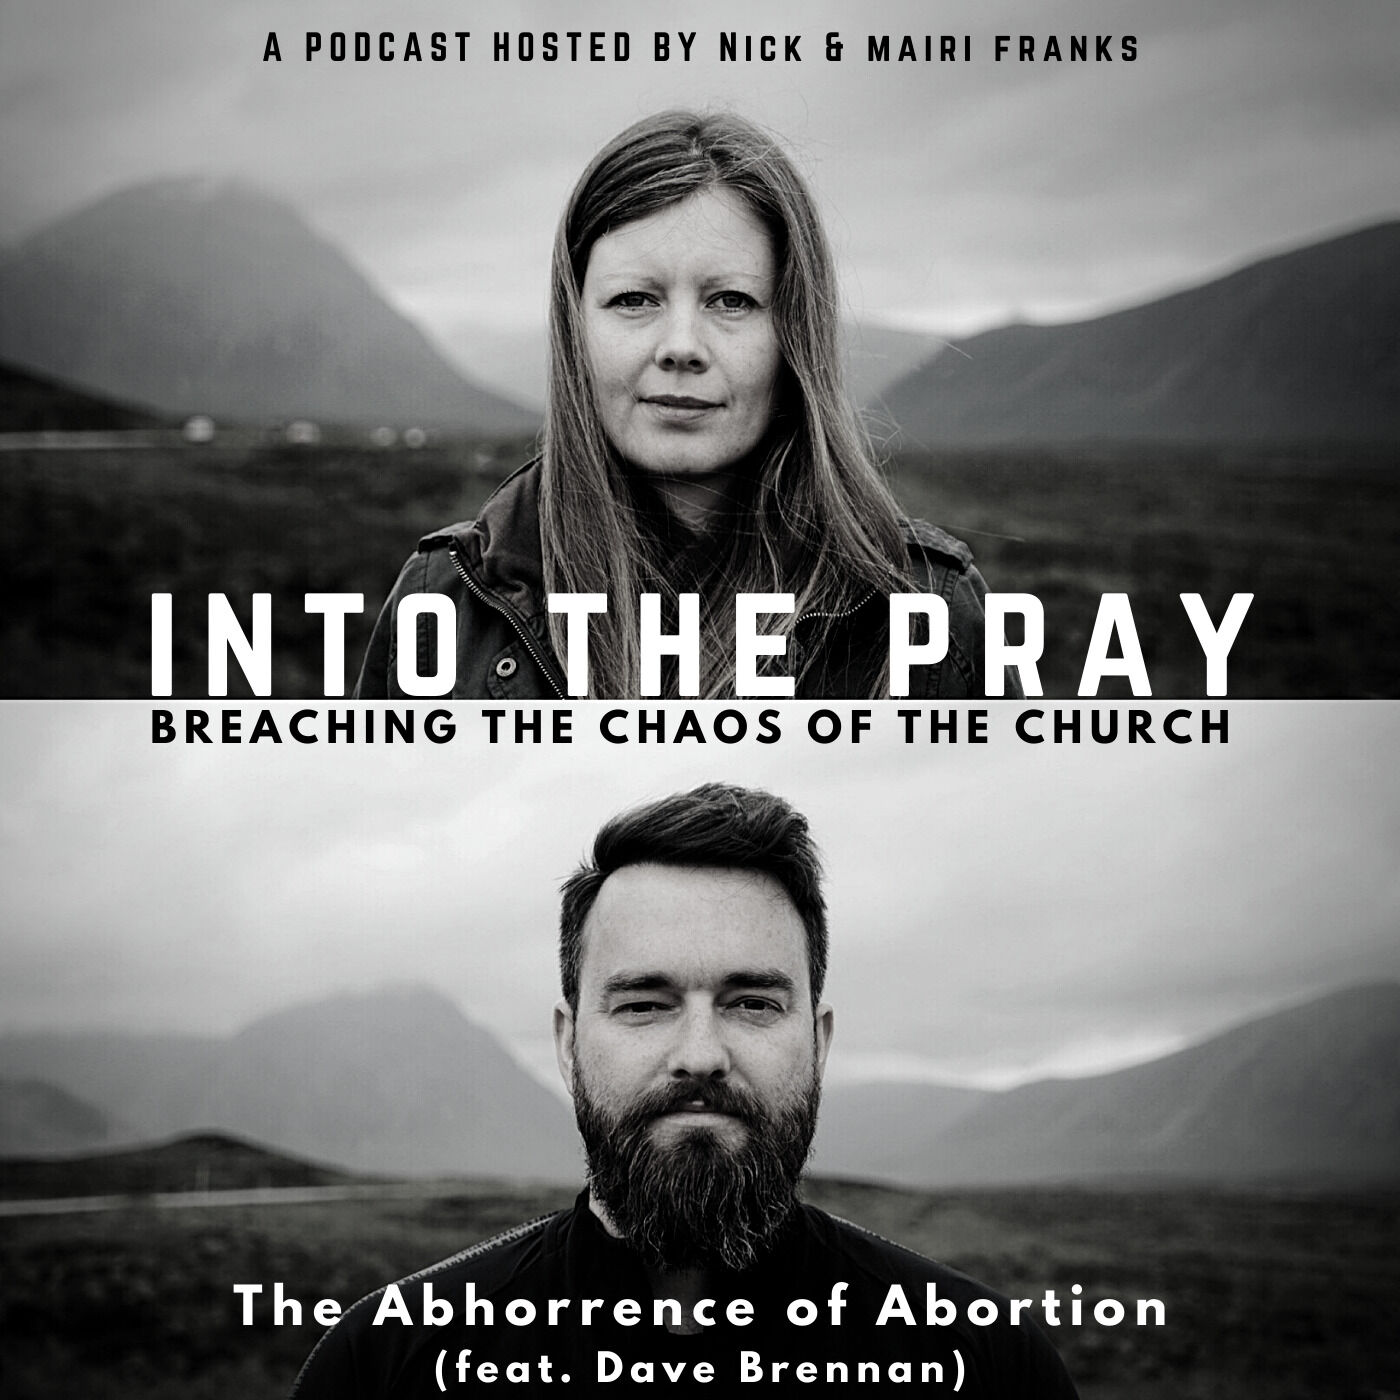 The Abhorrence of Abortion (feat. Dave Brennan)